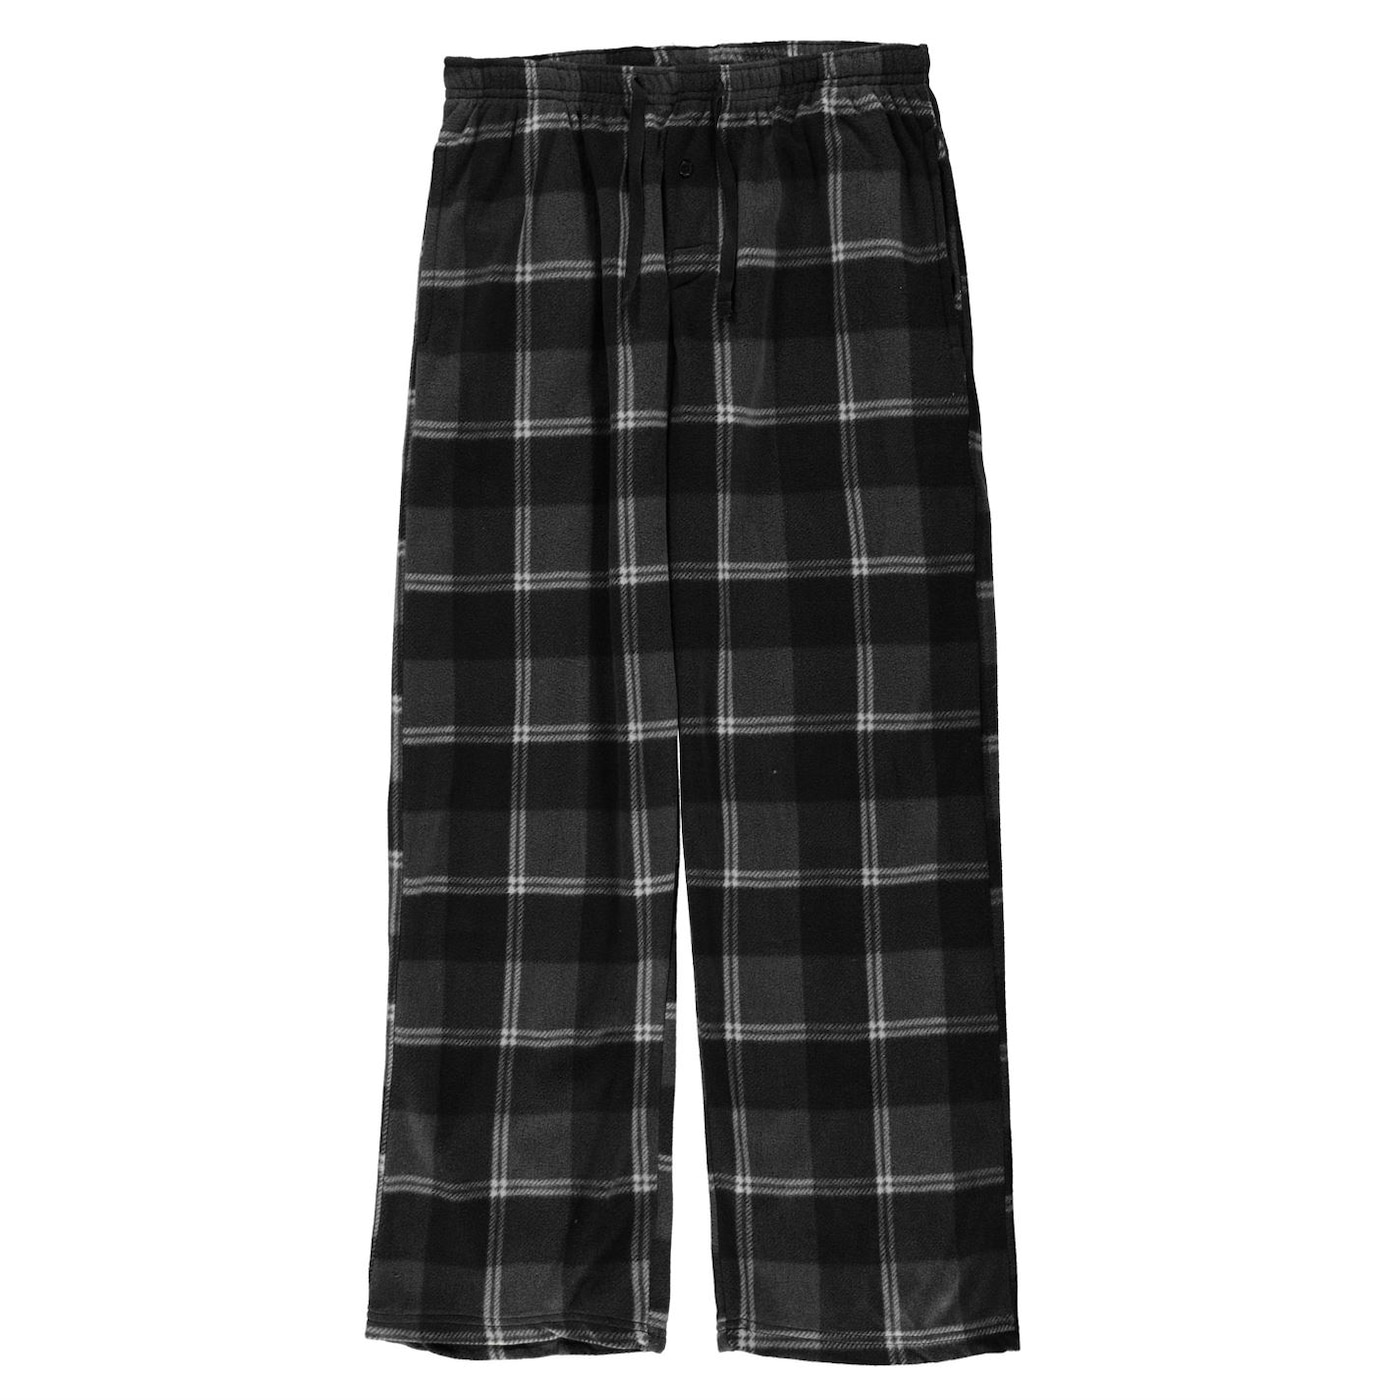 Gelert Soft Plaid Pyjama Bottoms pánske